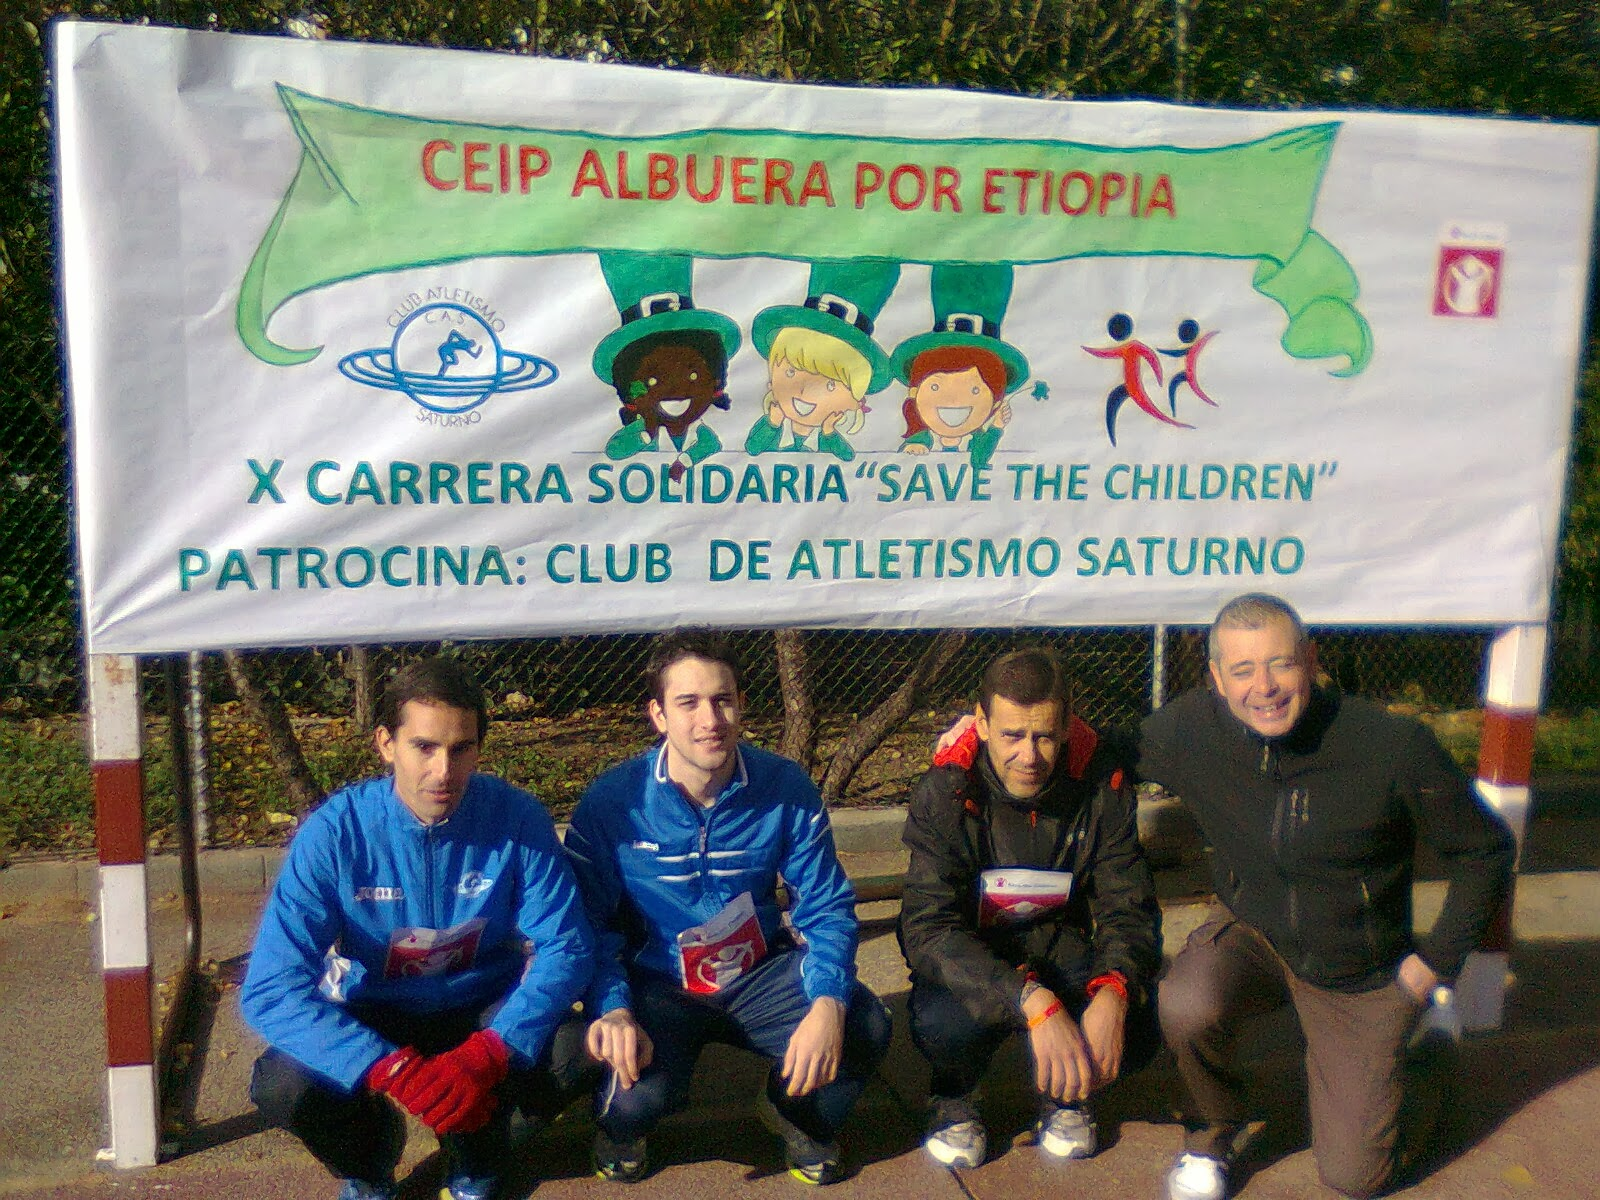 Carrera Solidaria Colegio Albuera